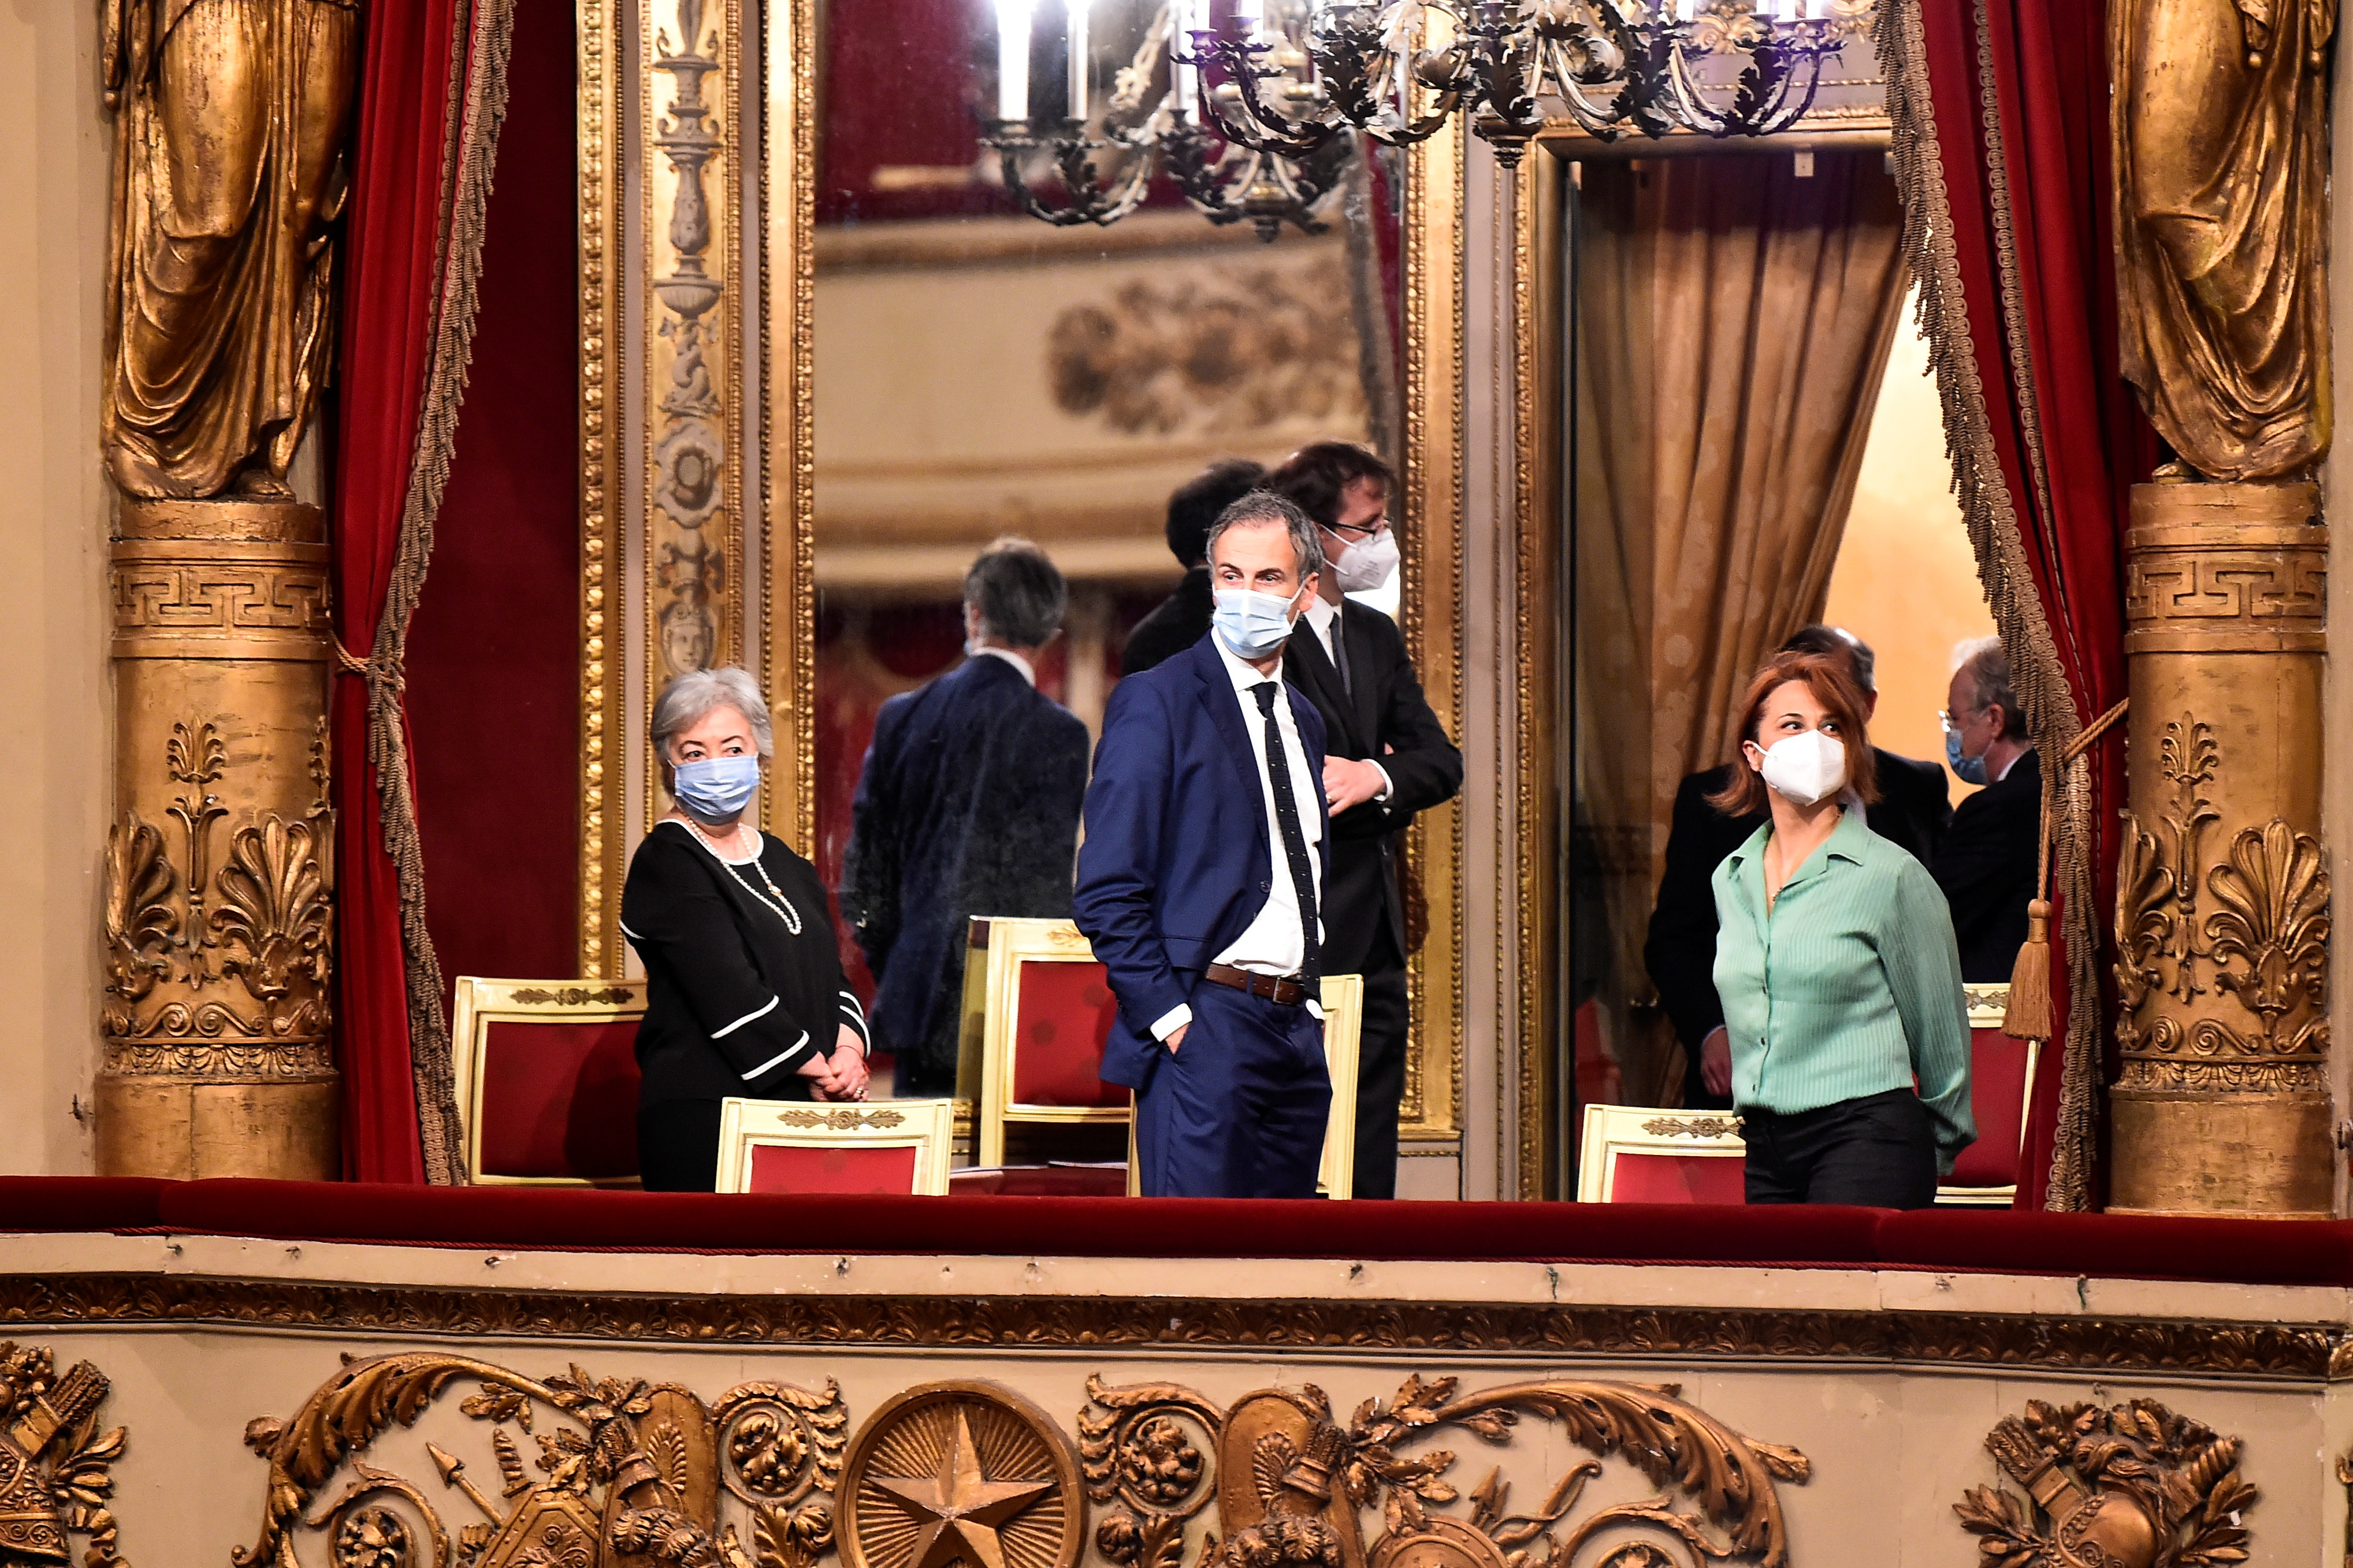 People attend the re-opening of La Scala opera house after it was closed due to the coronavirus disease (COVID-19) pandemic, in Milan, Italy, May 10, 2021. REUTERS/Flavio Lo Scalzo